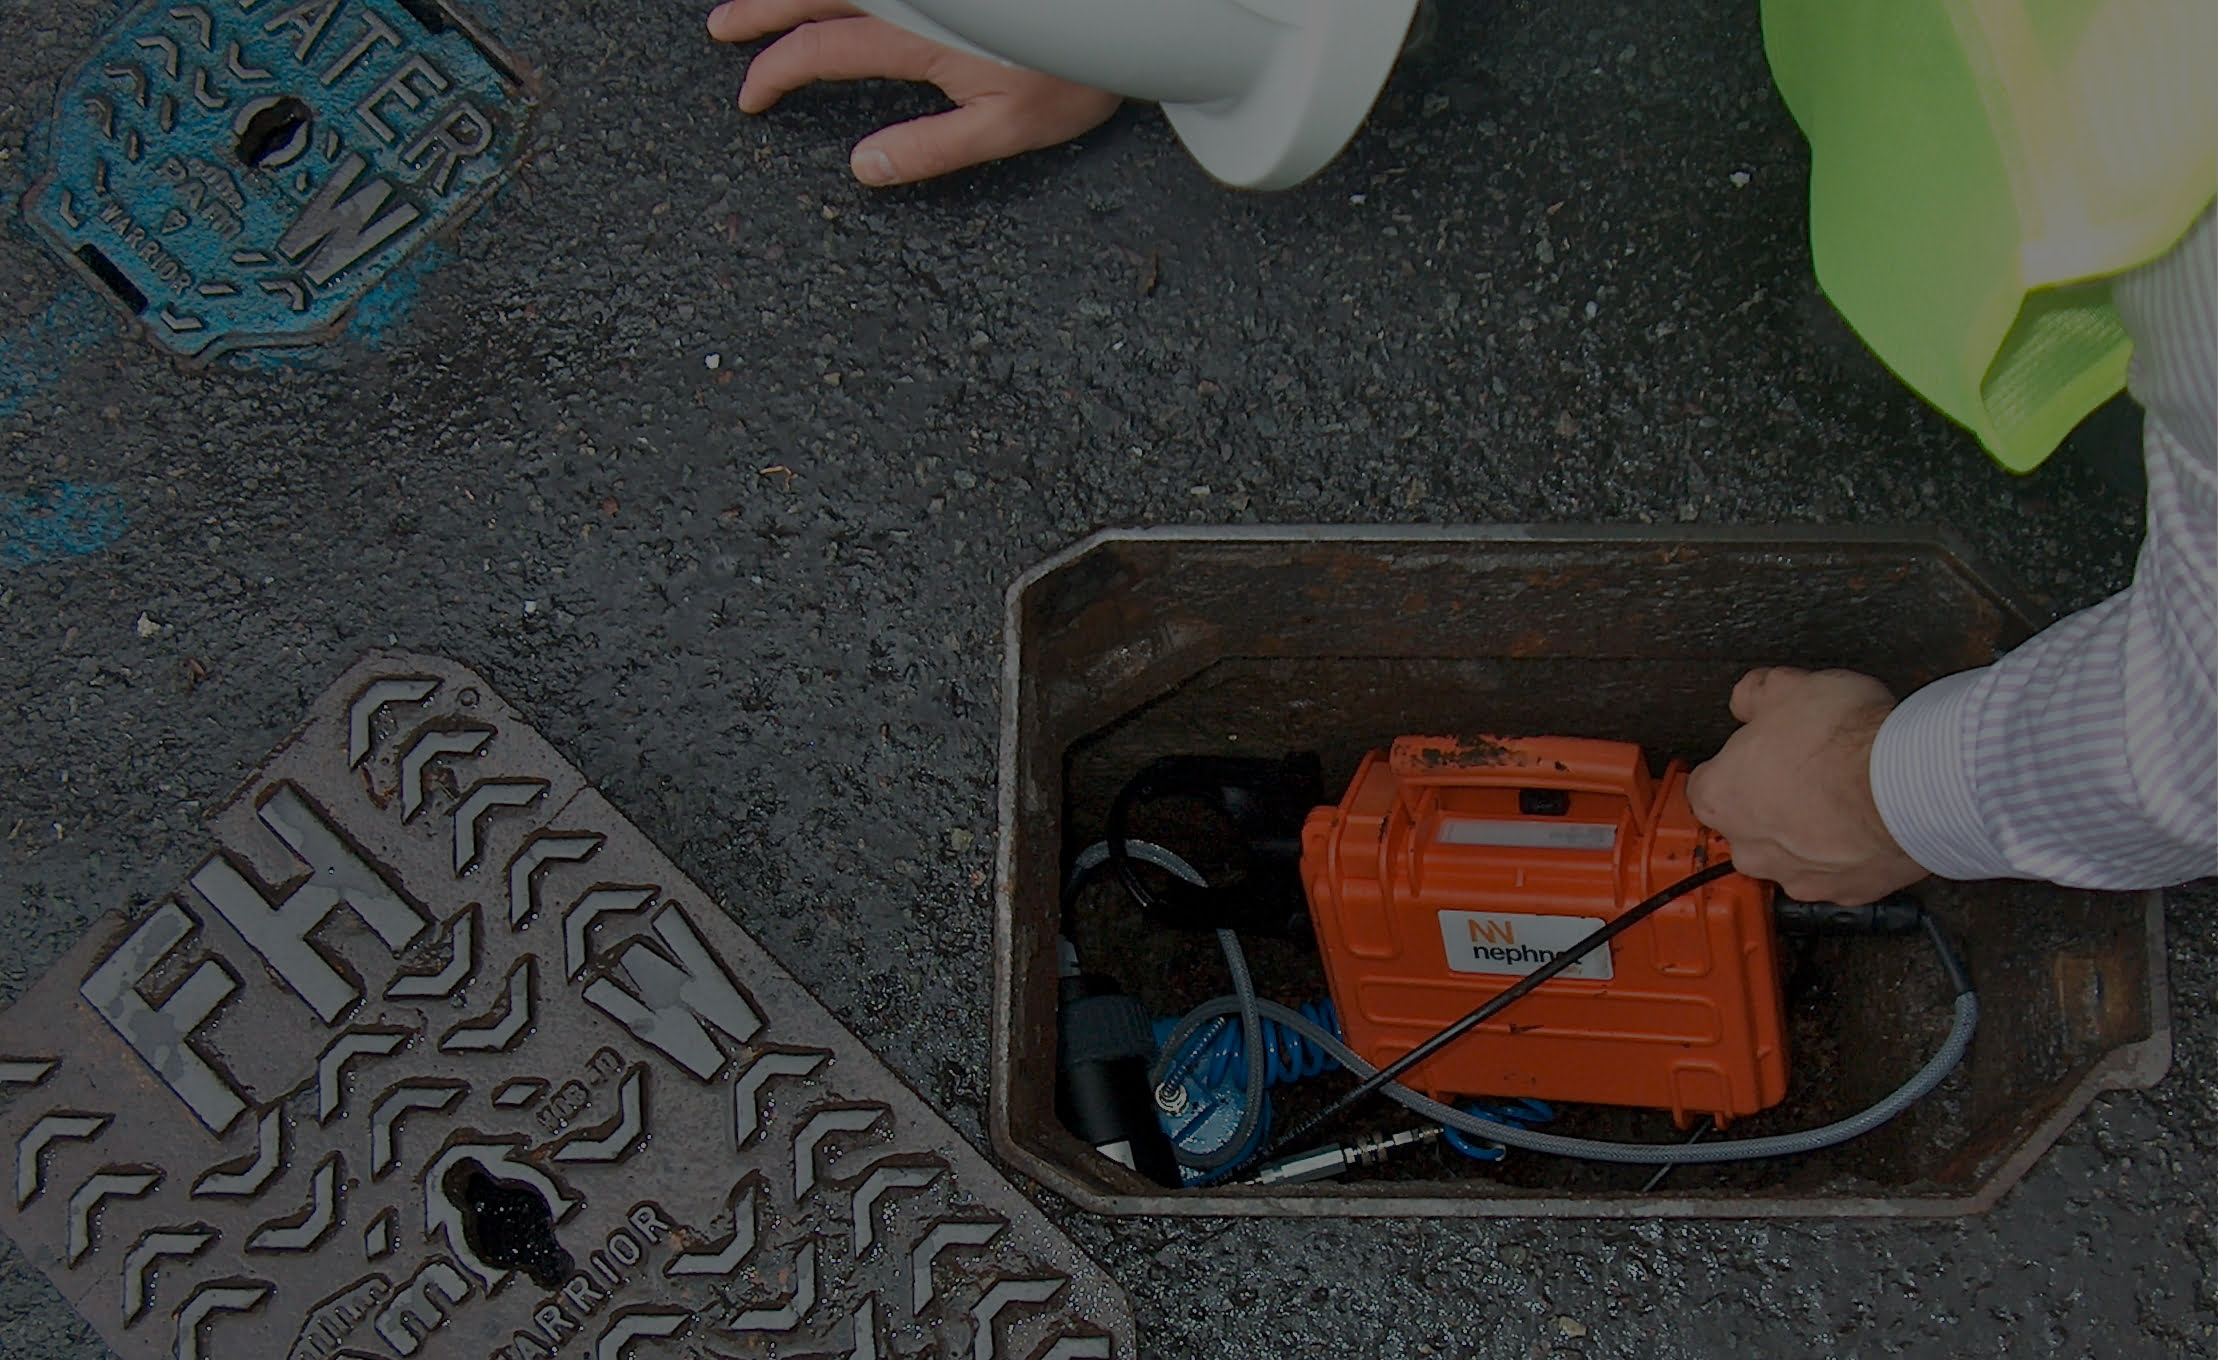 Nephnet-in-manhole-with-black-overlay